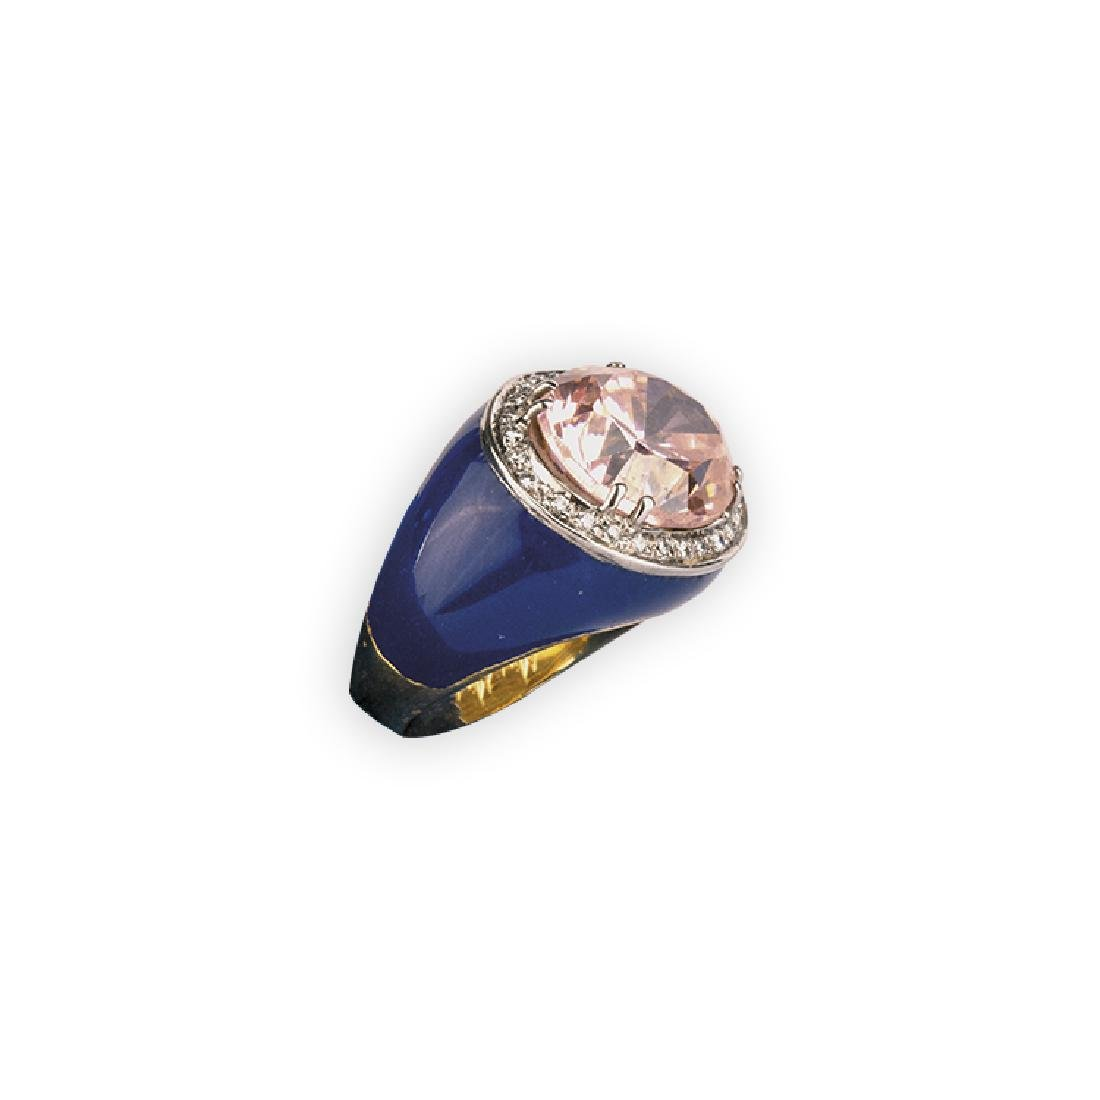 Ring with pink quartz and blu enamel